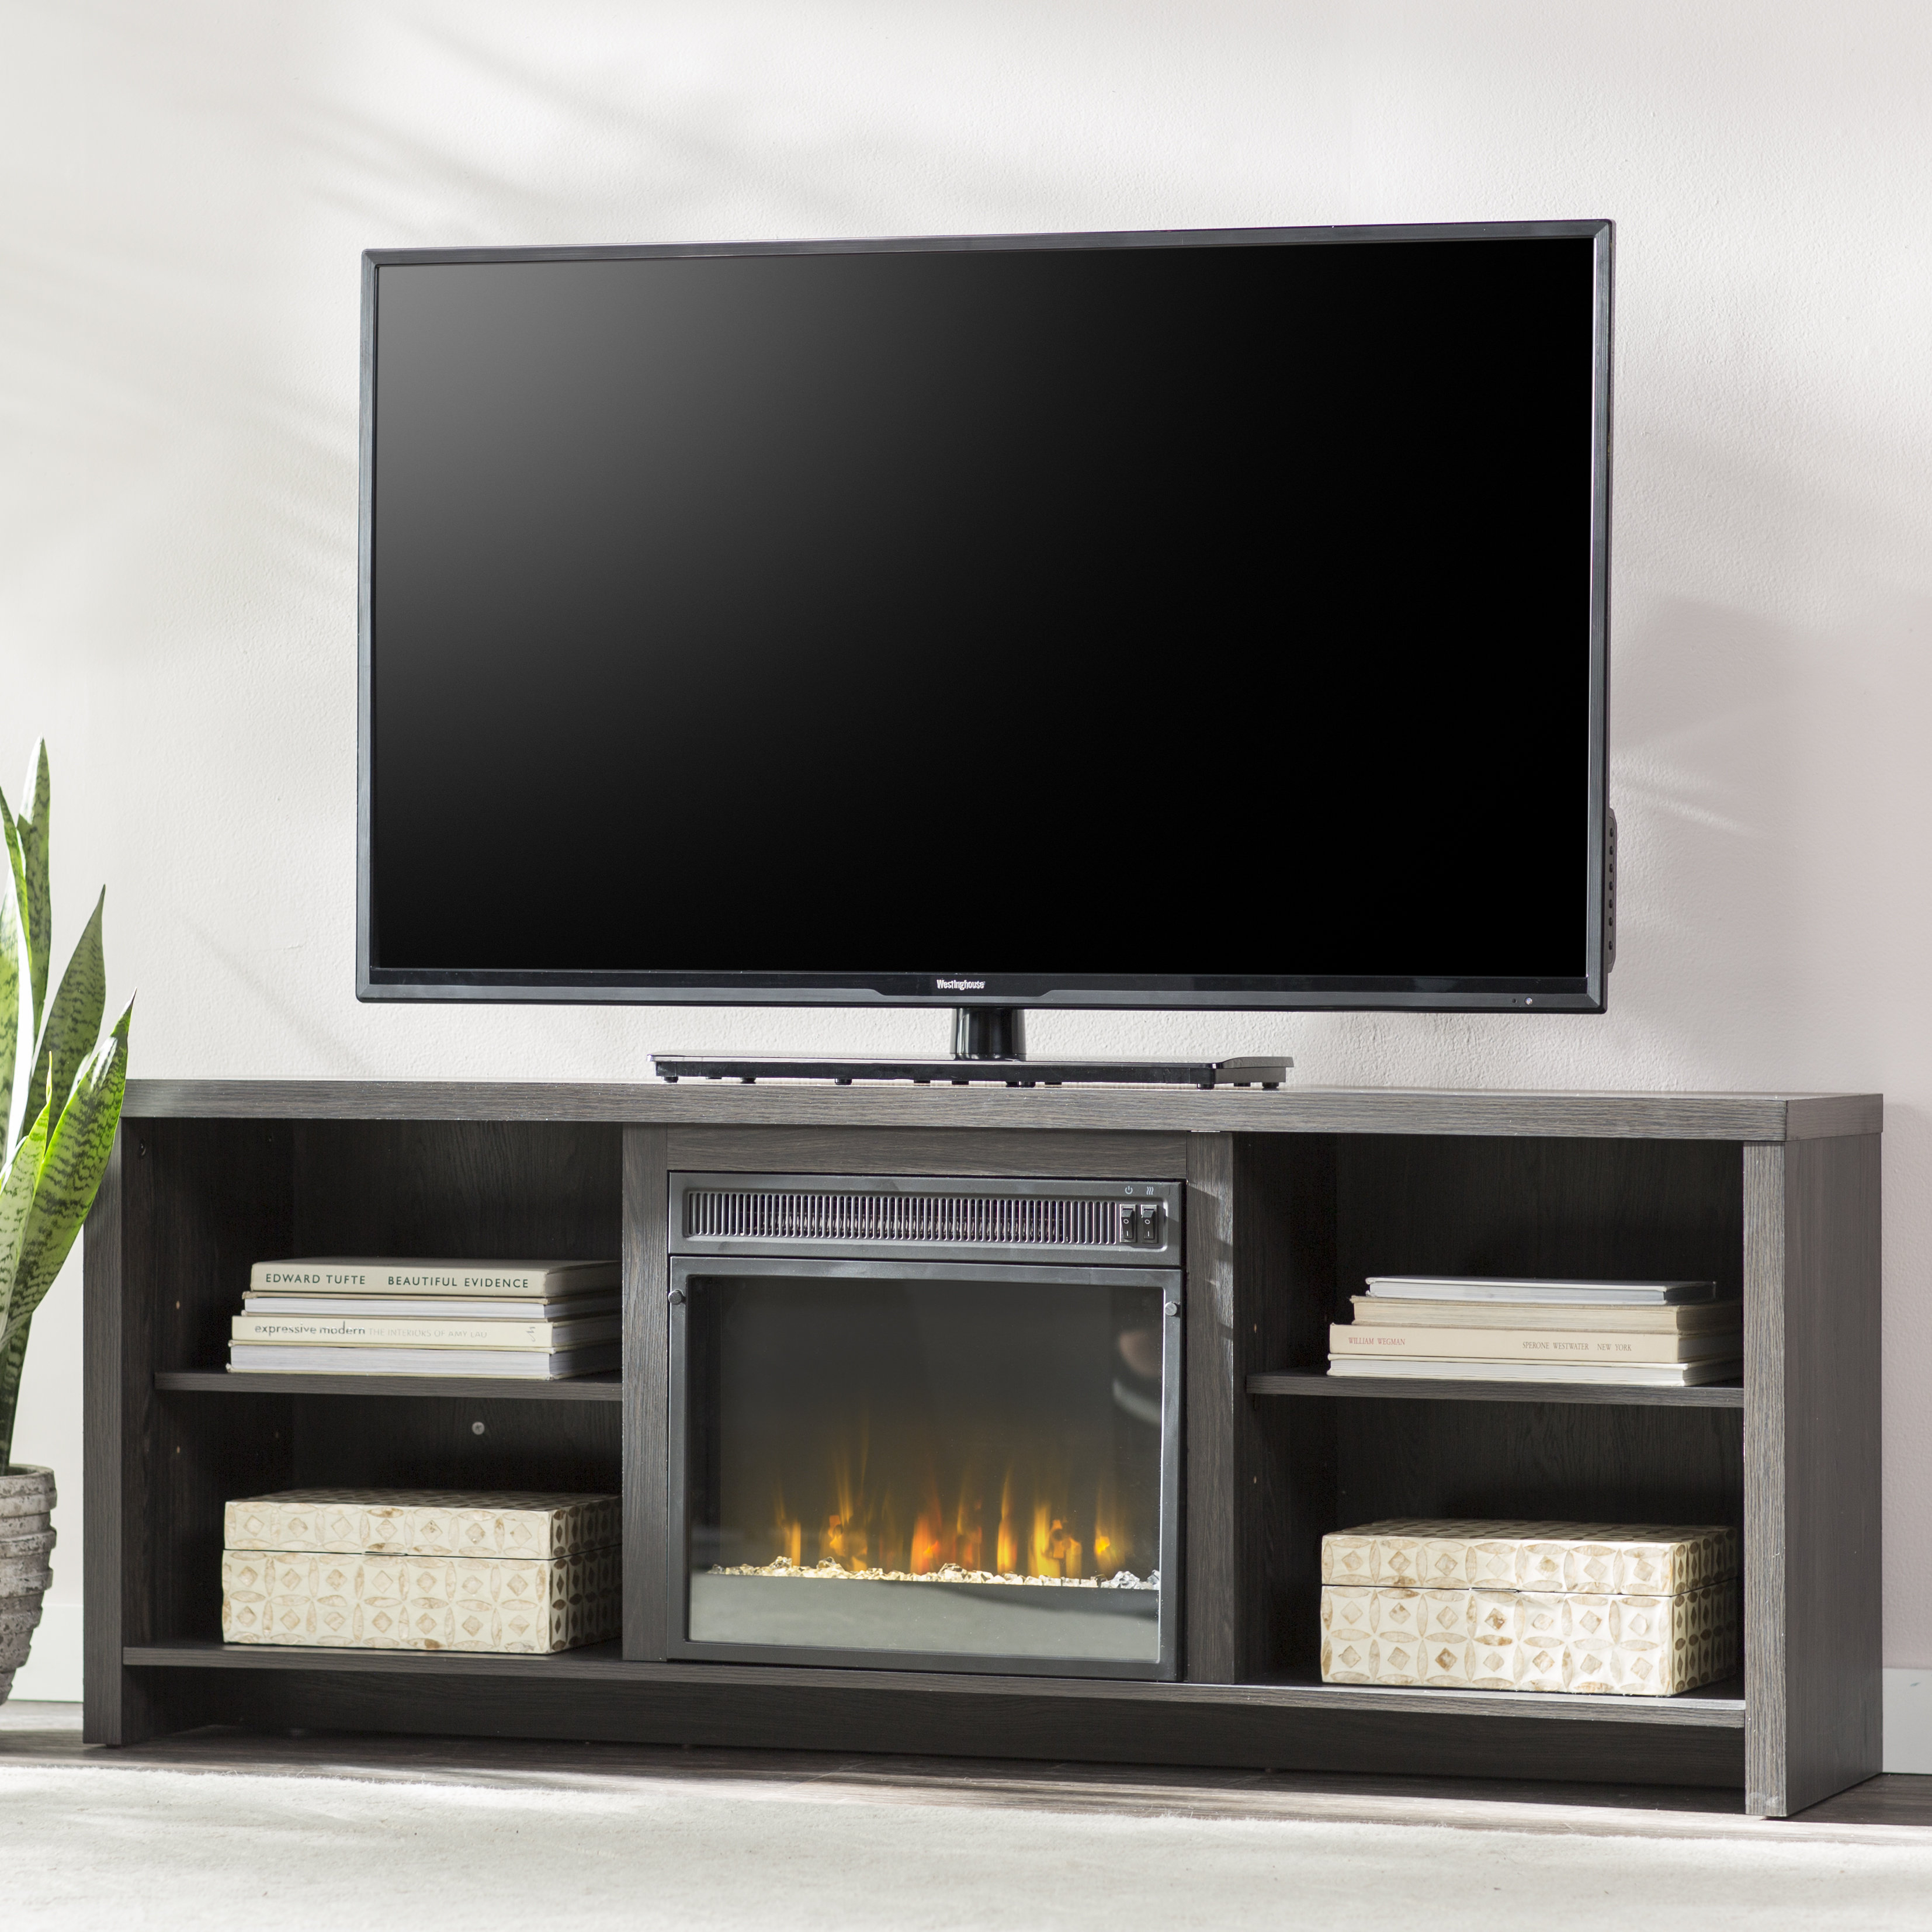 Fireplace Tv Stands & Entertainment Centers You'll Love | Wayfair (View 10 of 30)